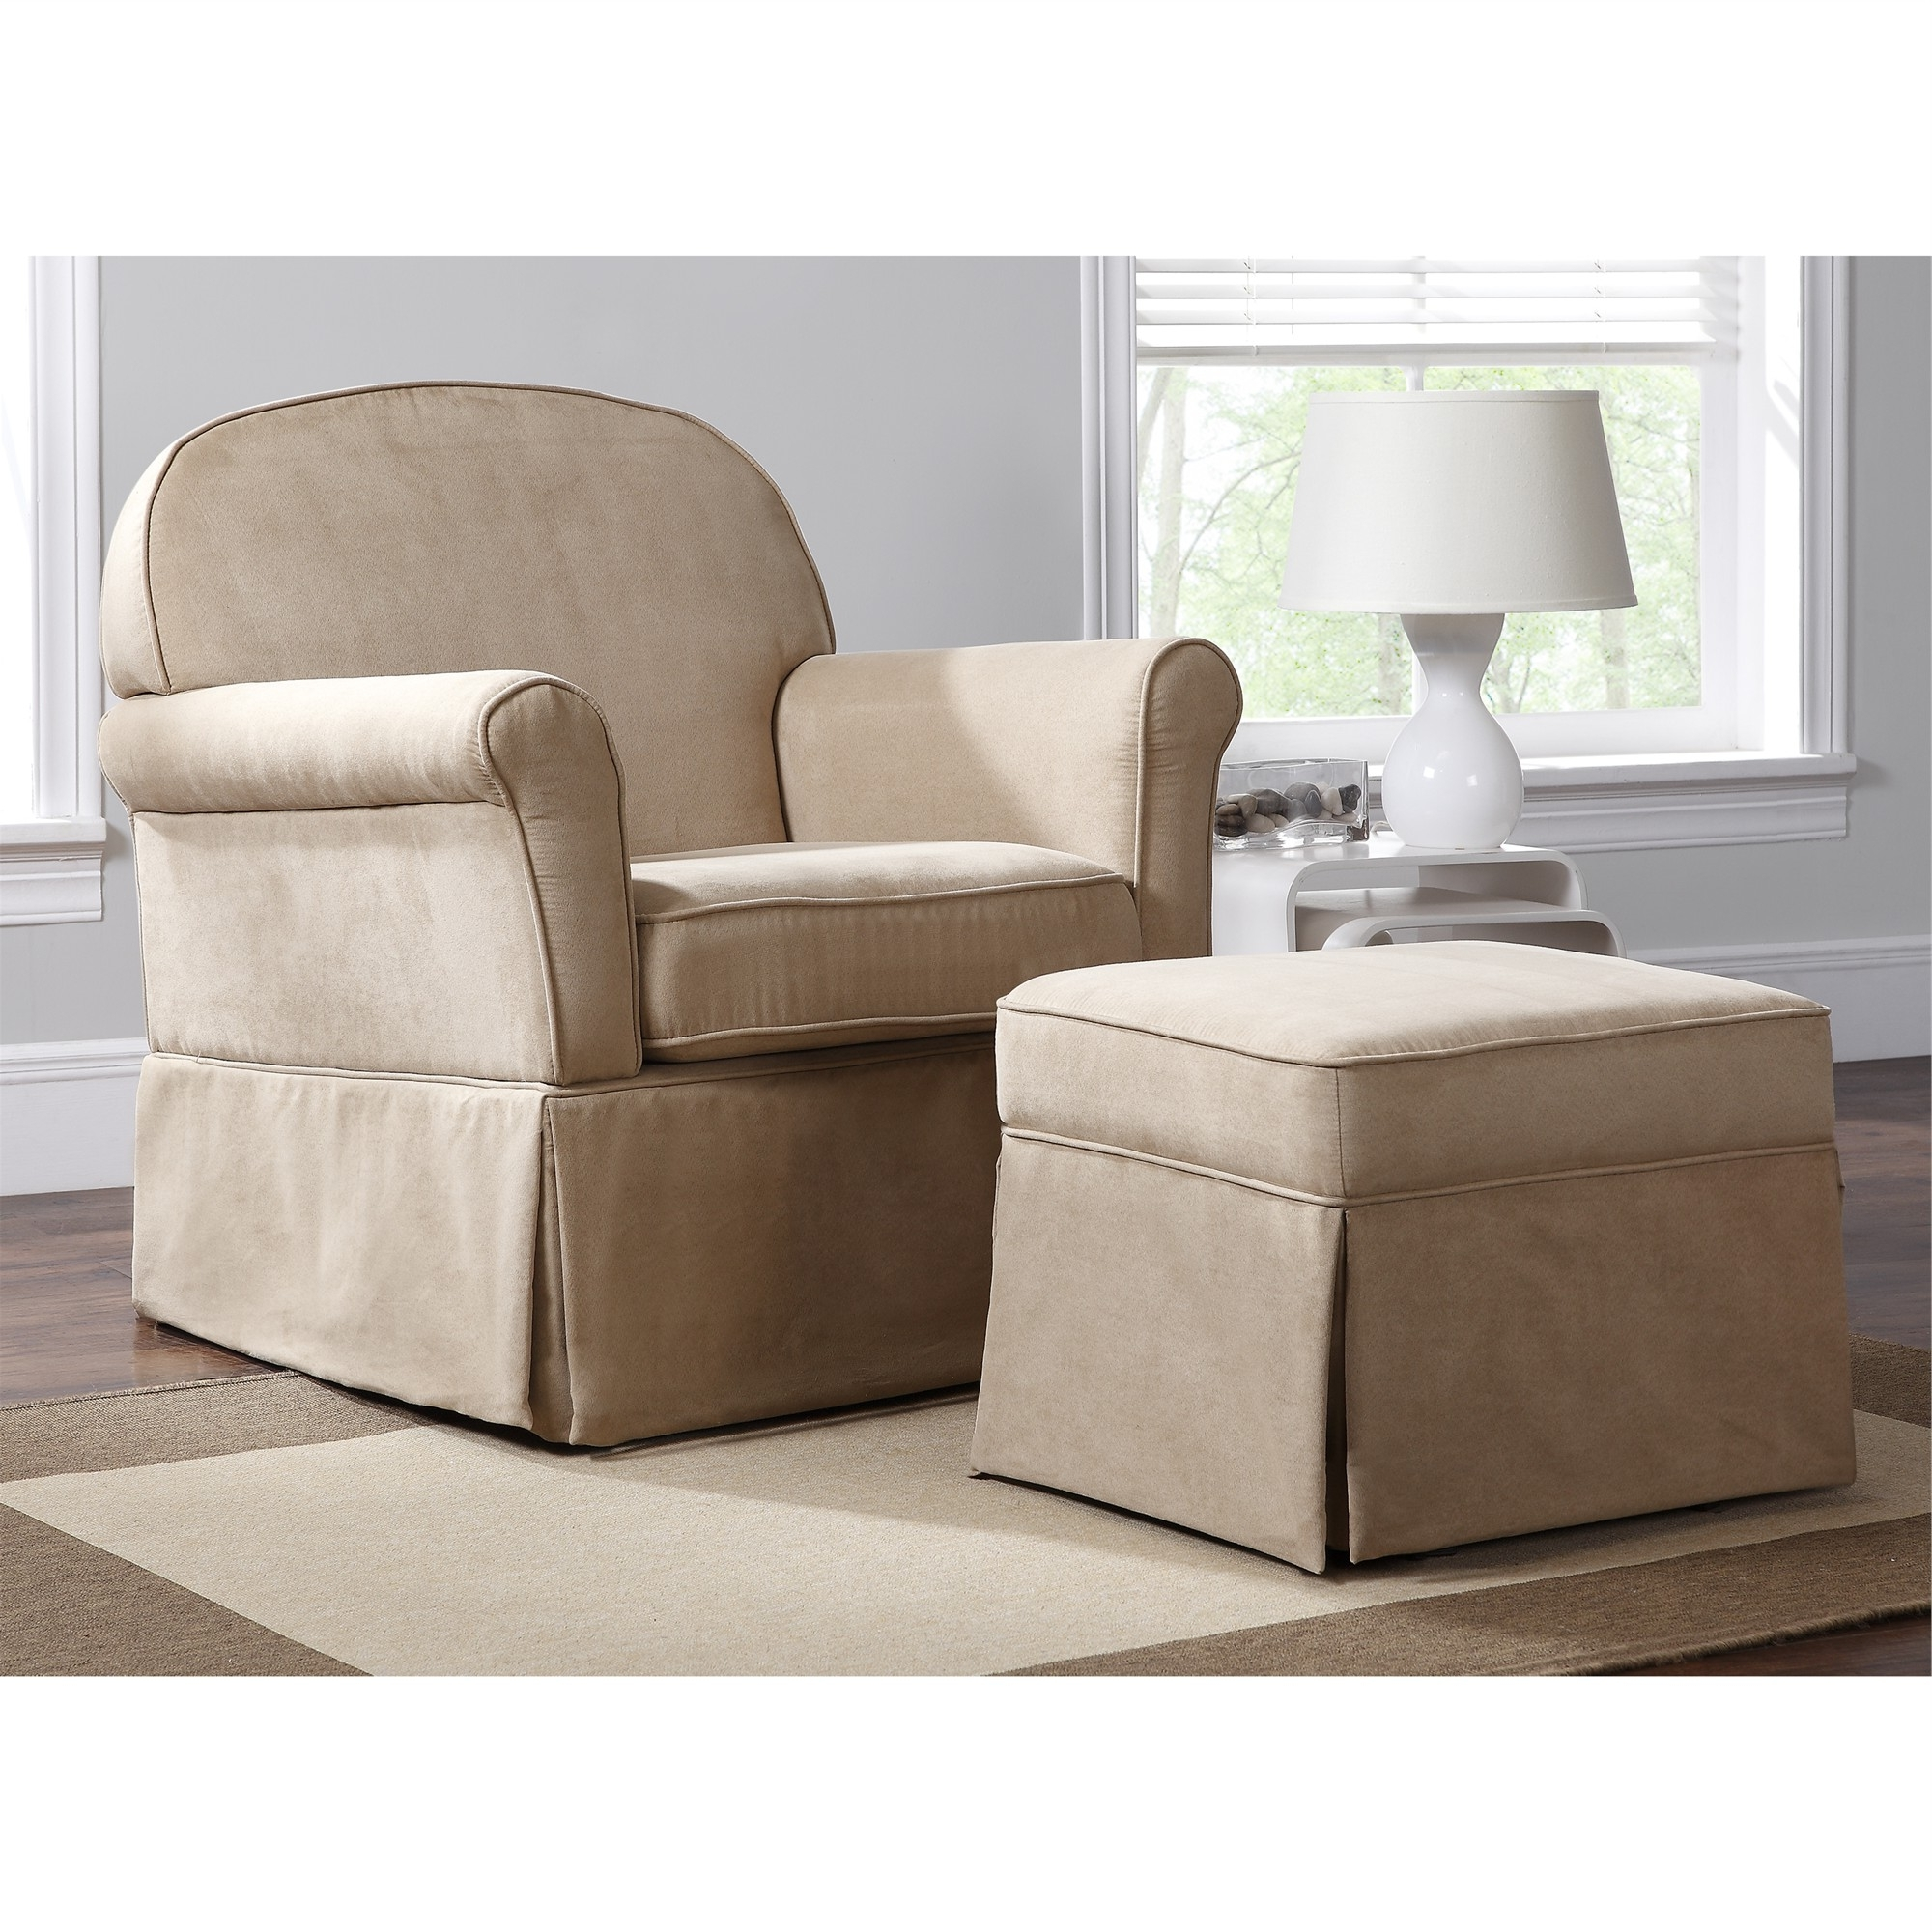 Swivel Glider & Ottoman Set, Beige (View 14 of 15)